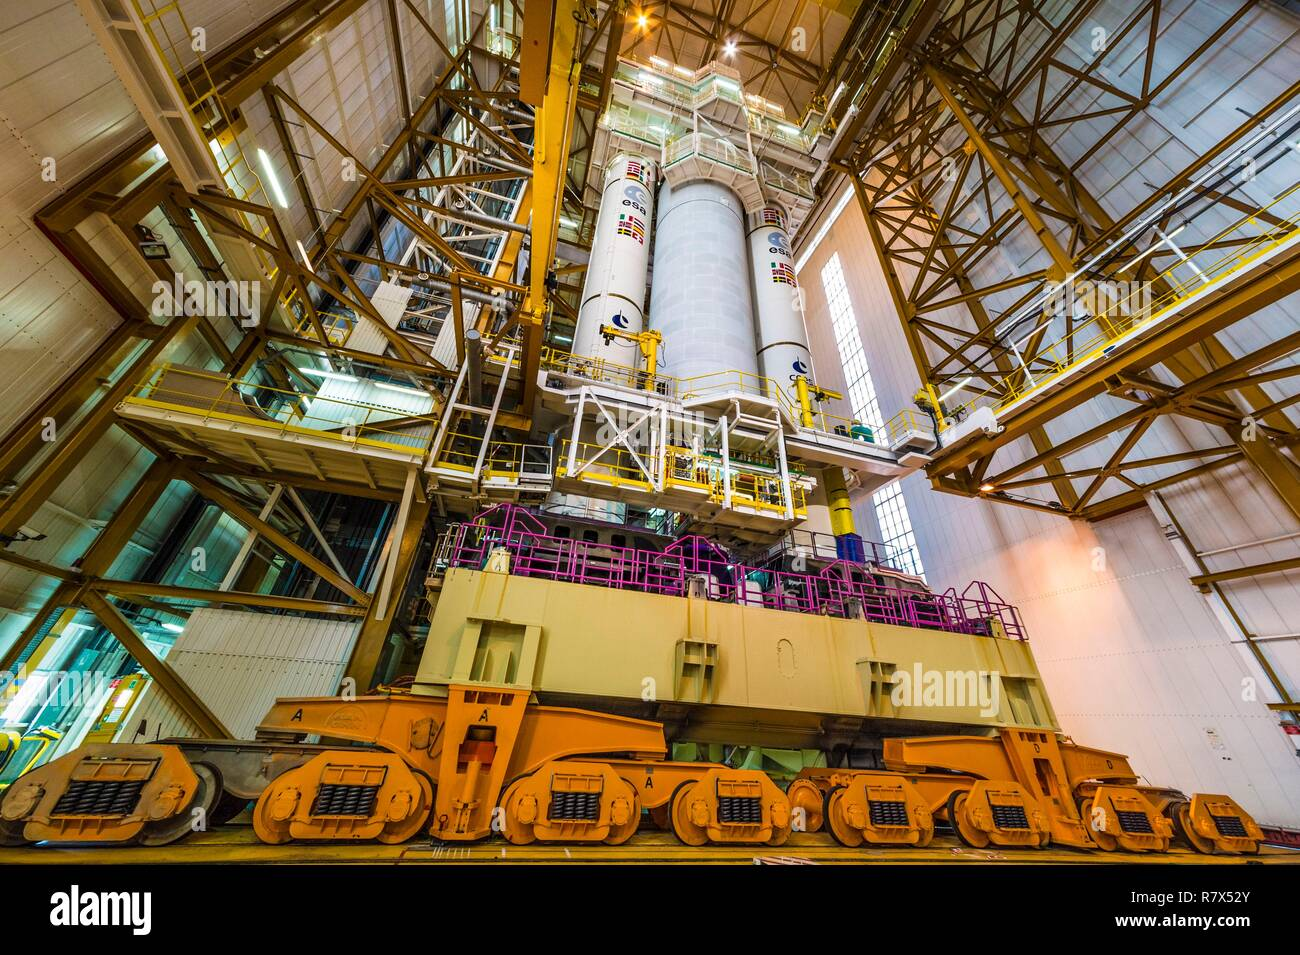 France, French Guiana, Kourou, Guiana Space Center (CSG), Ariane V rocket on the assembly table, during a mounting campaign inside the Launcher Integration Building (BIL) - Stock Image